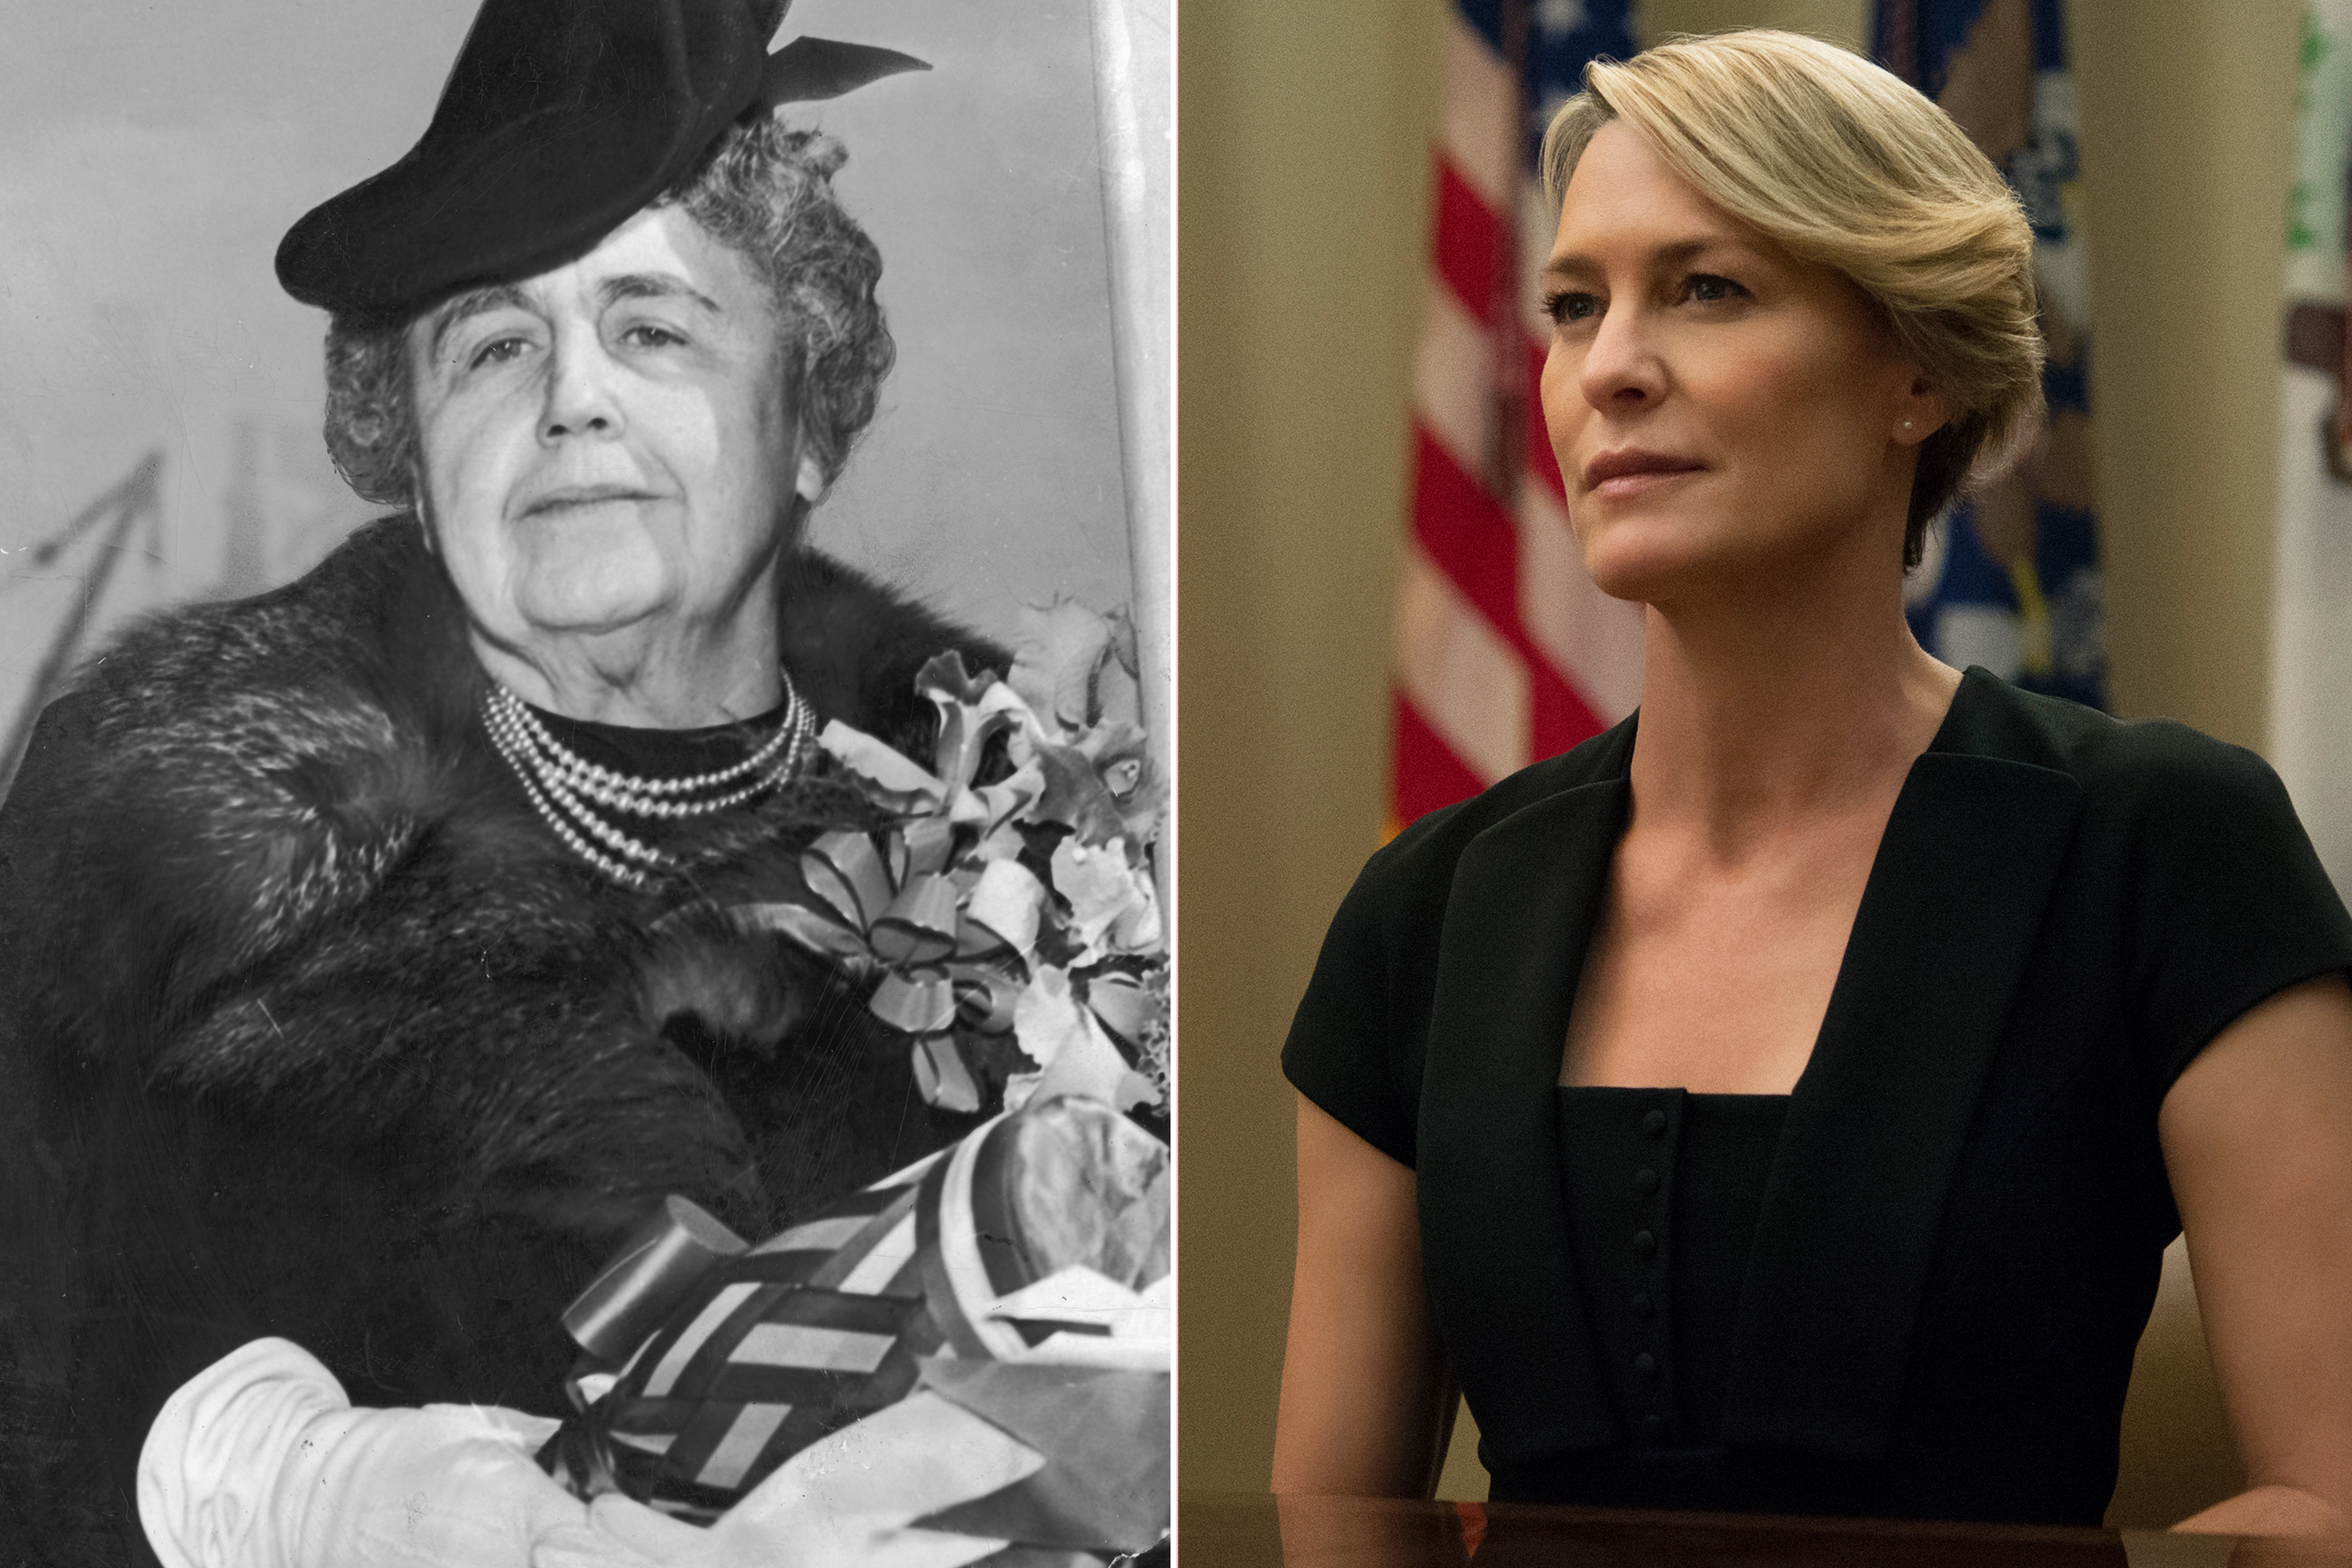 From left: First Lady Edith Wilson and Robin Wright as Claire Underwood in House of Cards.